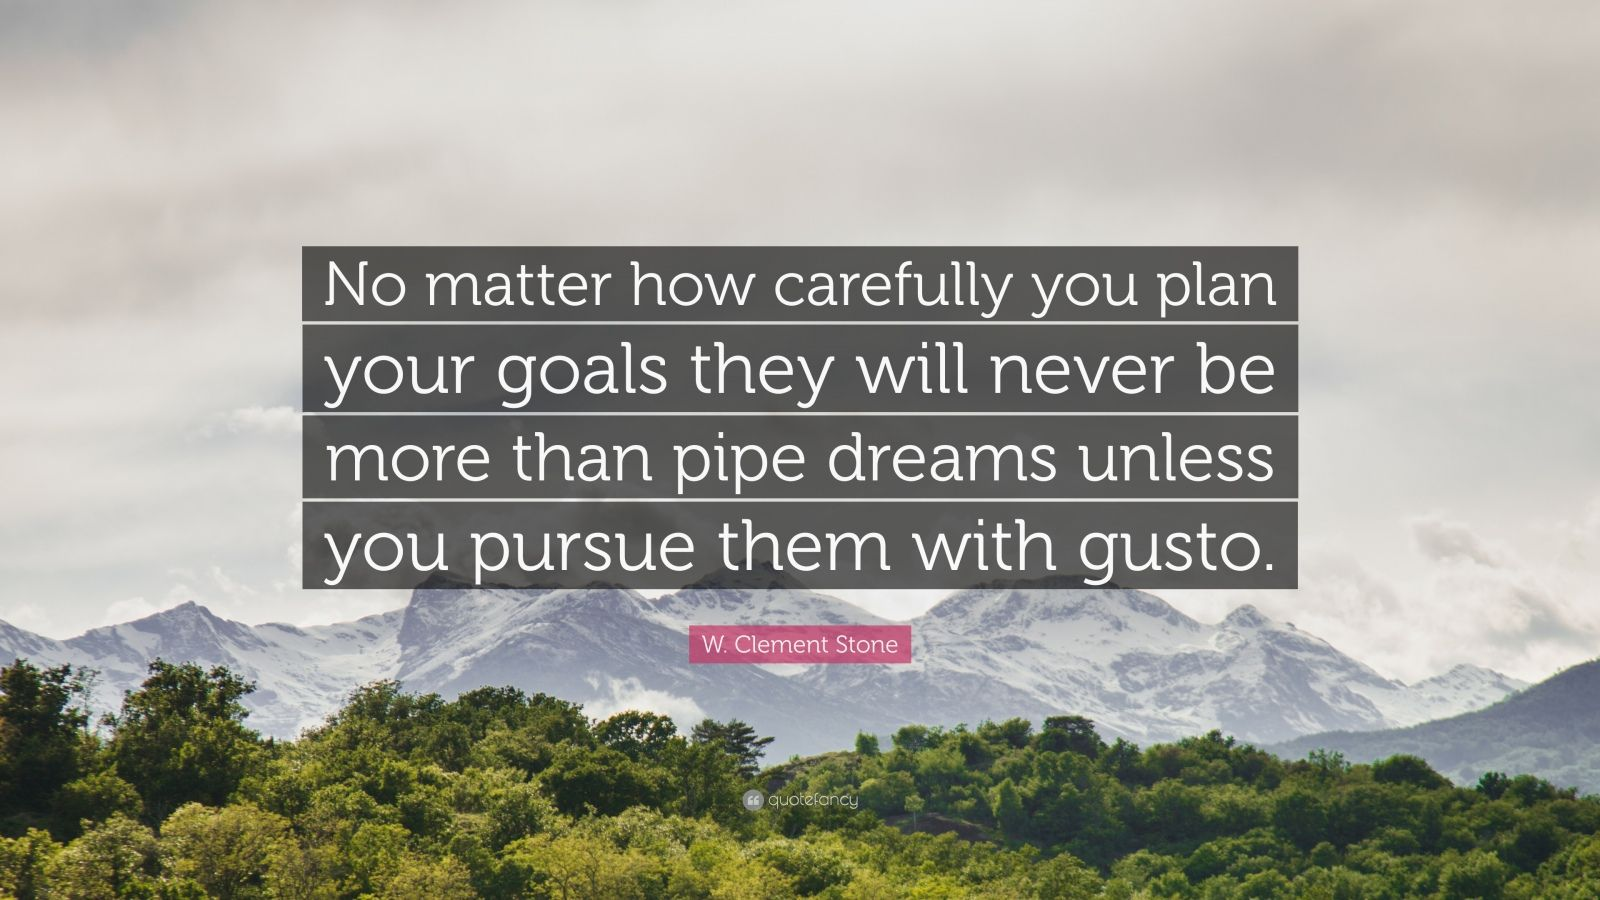 "W. Clement Stone Quote: ""No matter how carefully you plan your goals they will never be more than pipe dreams unless you pursue them with gusto."""